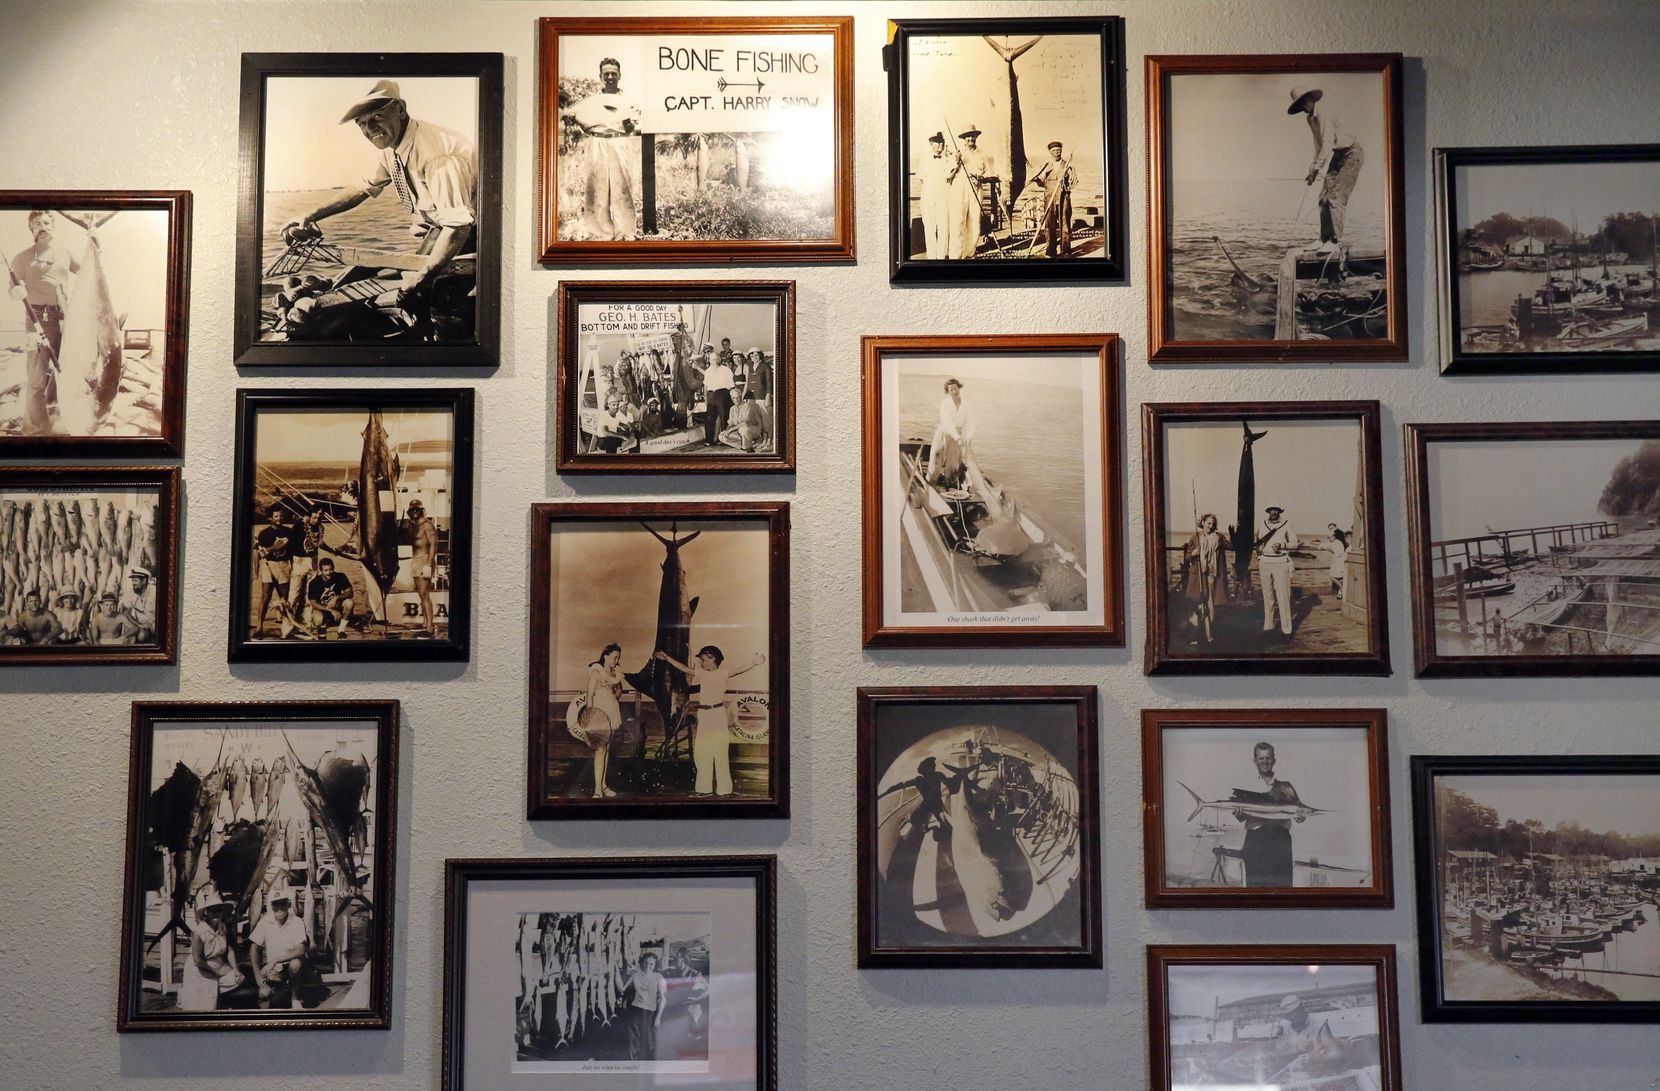 Old fishing photos cover a wall at 20 Feet Seafood on Peavy Rd. in Dallas, Tuesday, September 17, 2019.